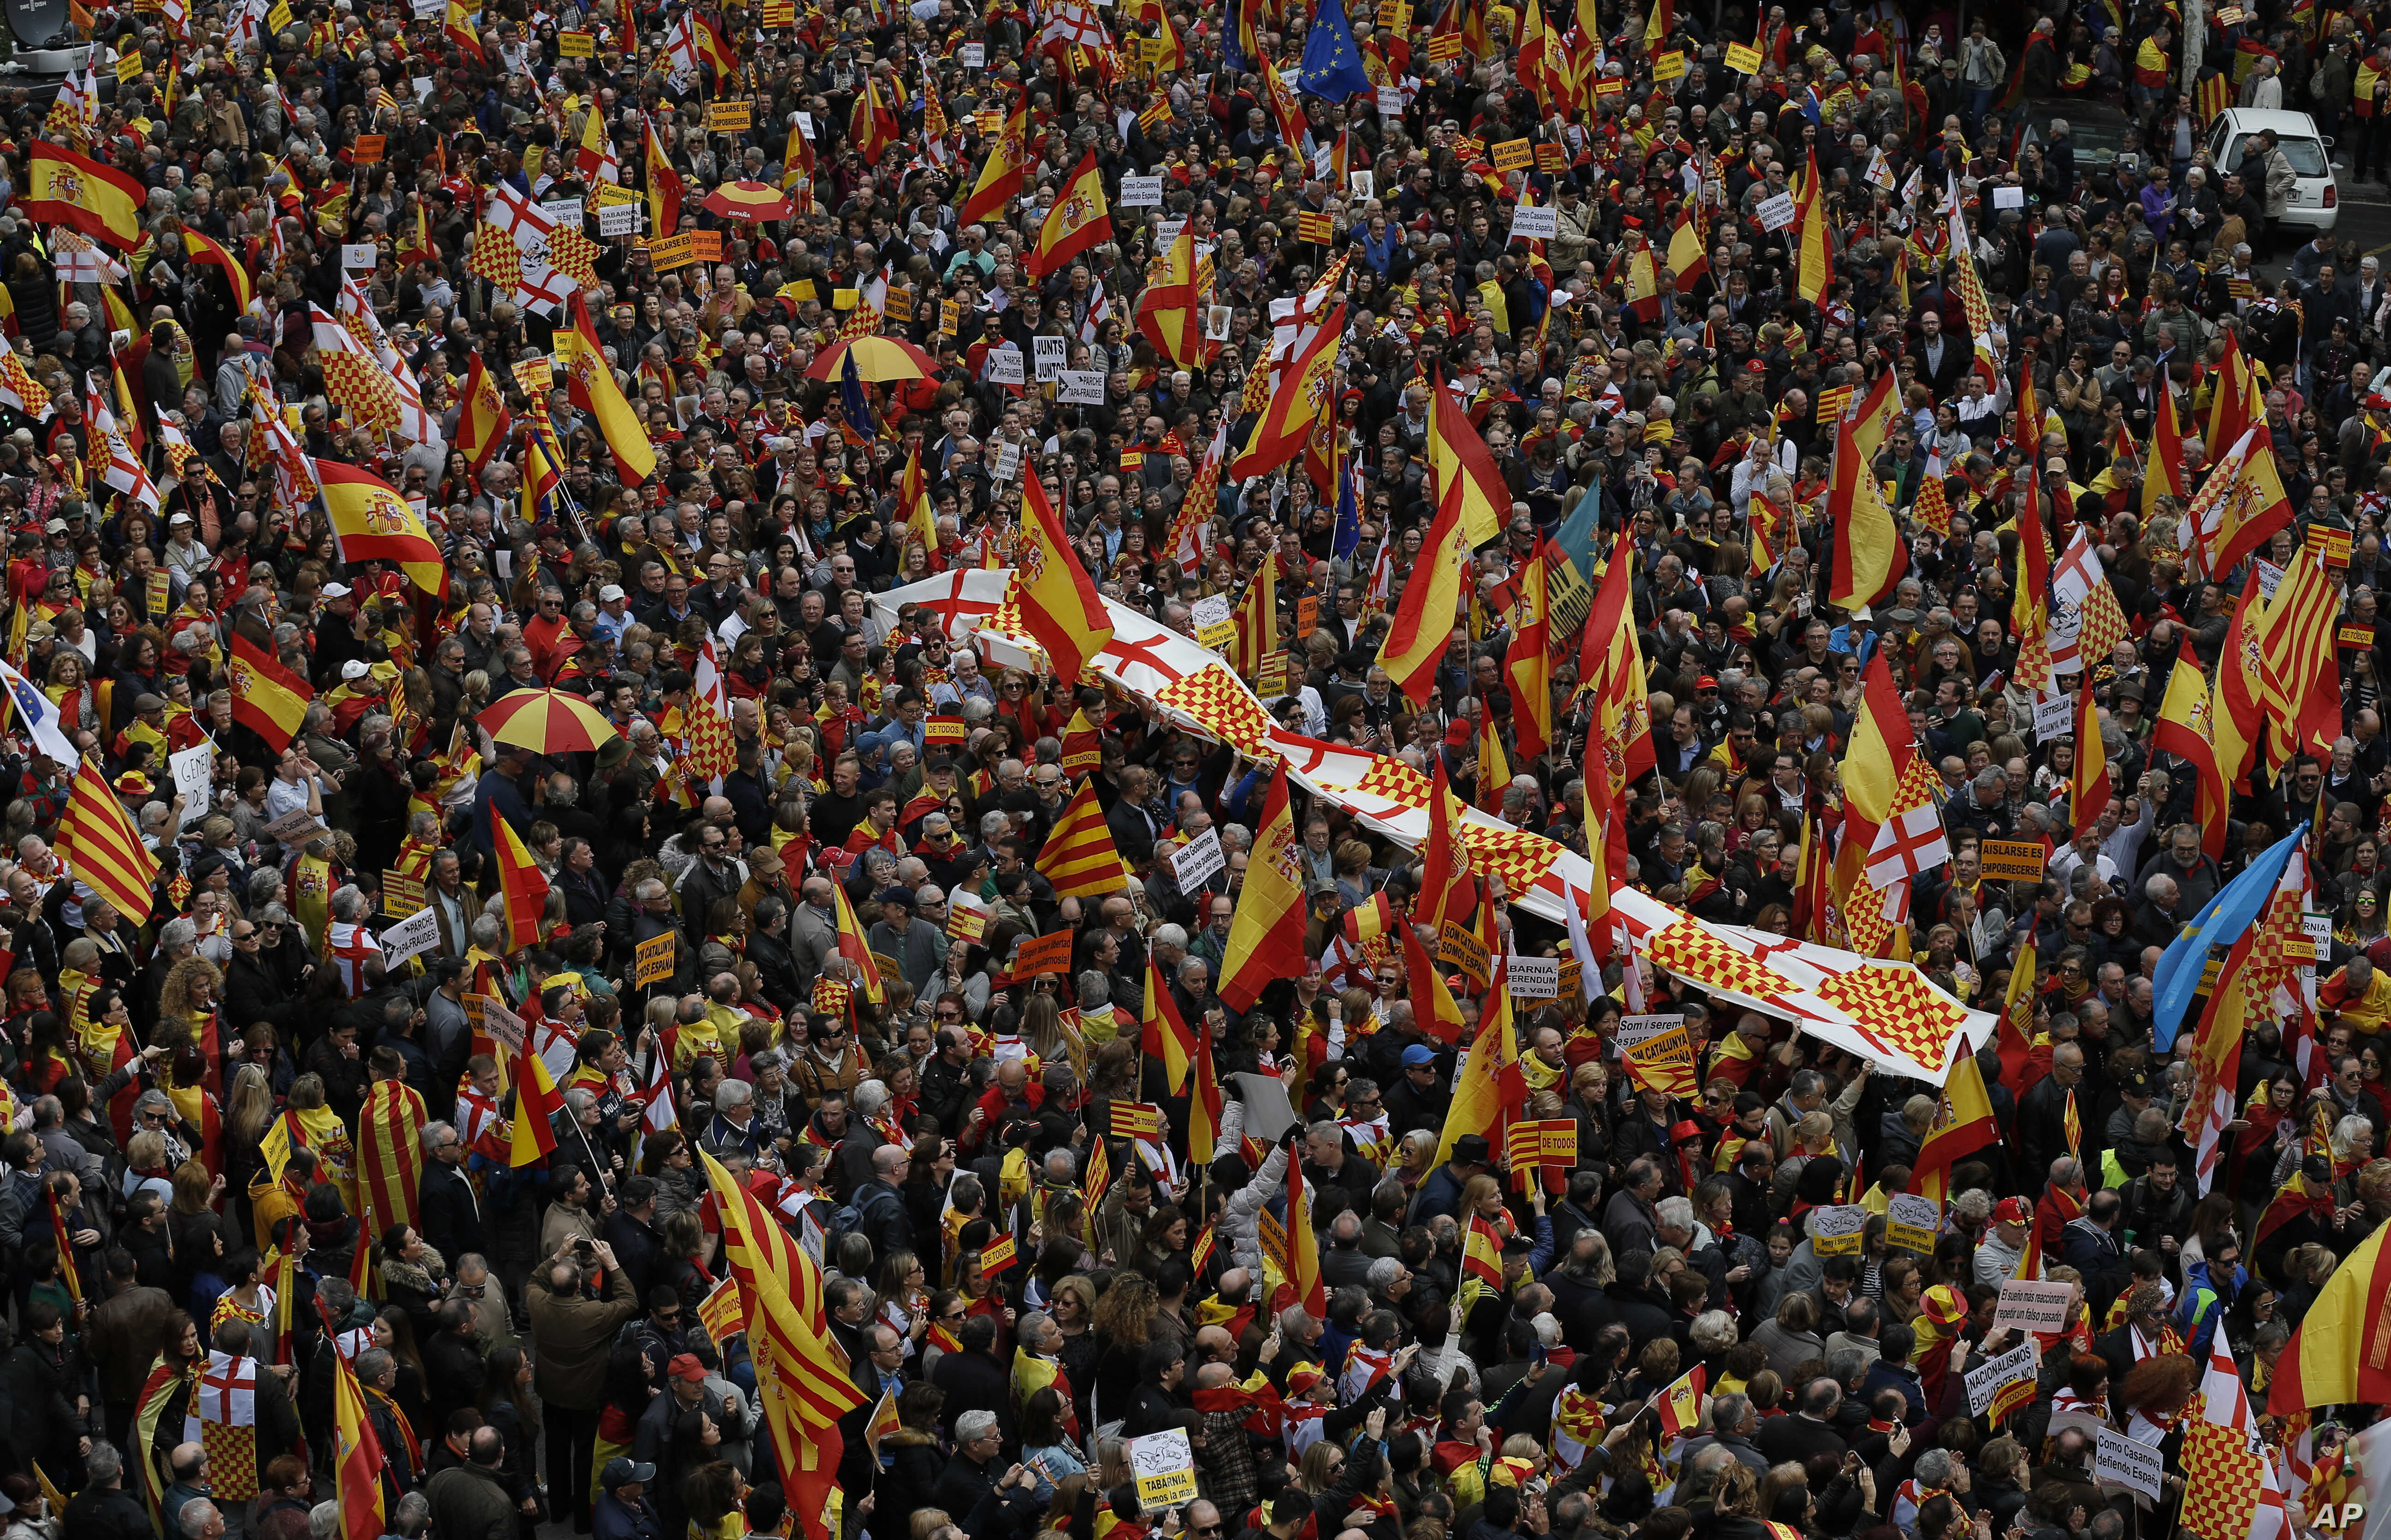 Pro-Unity Spaniards March with Facetious Movement in